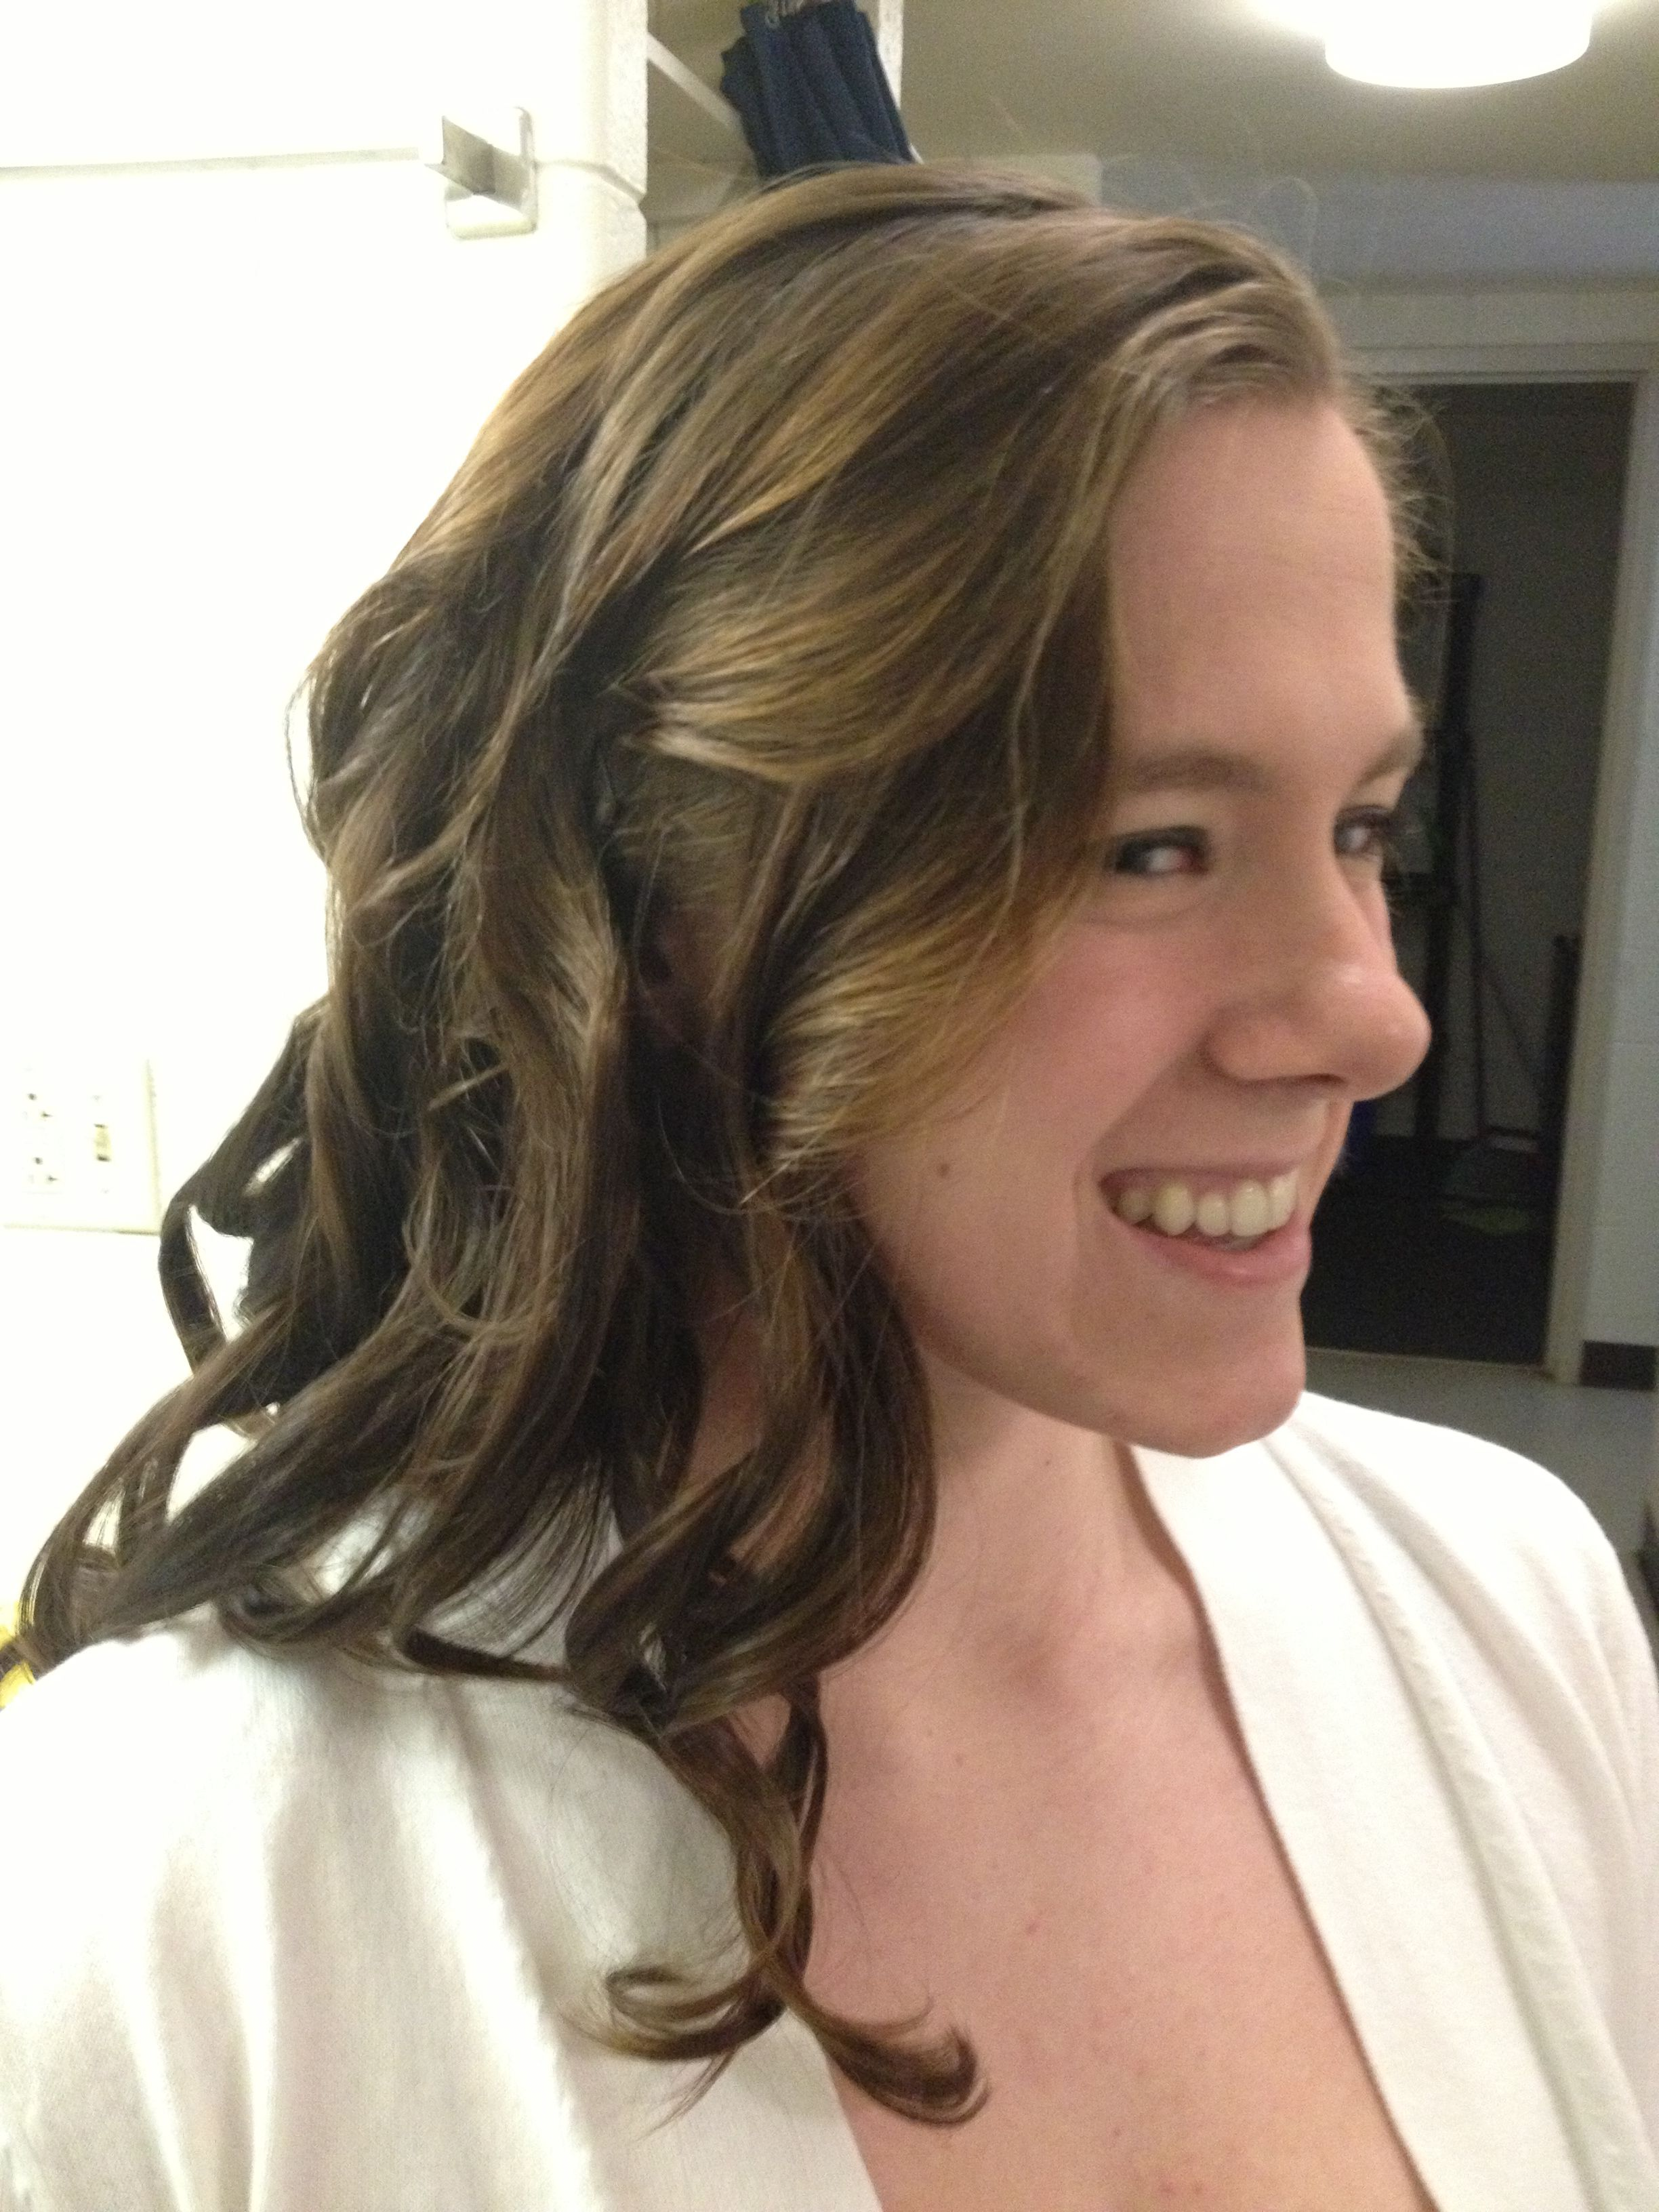 Loose curls for a banquet By Cas s Hair Design